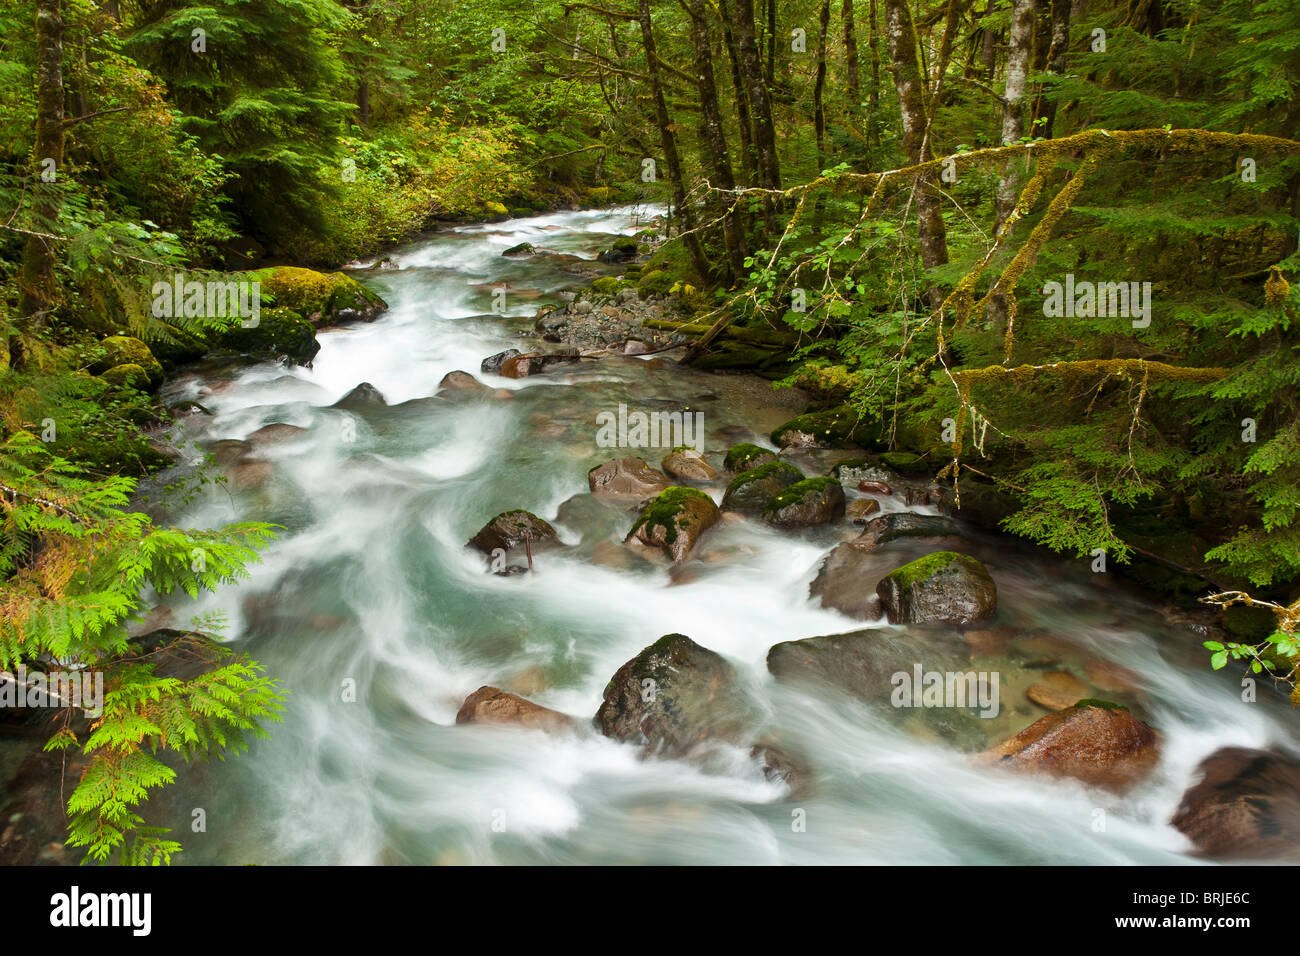 North Fork Cascade River, Mount Baker-Snoqualmie National Forest, North Cascades, Washington. - Stock Image